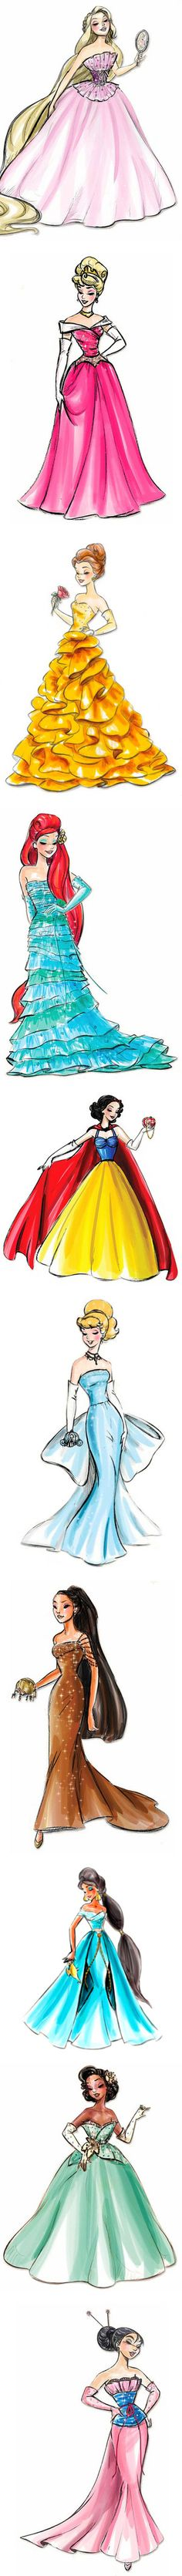 Disney Princess Prom by keyaluvsfrank on Polyvore so cute! although, Cinderella's dress could be better...